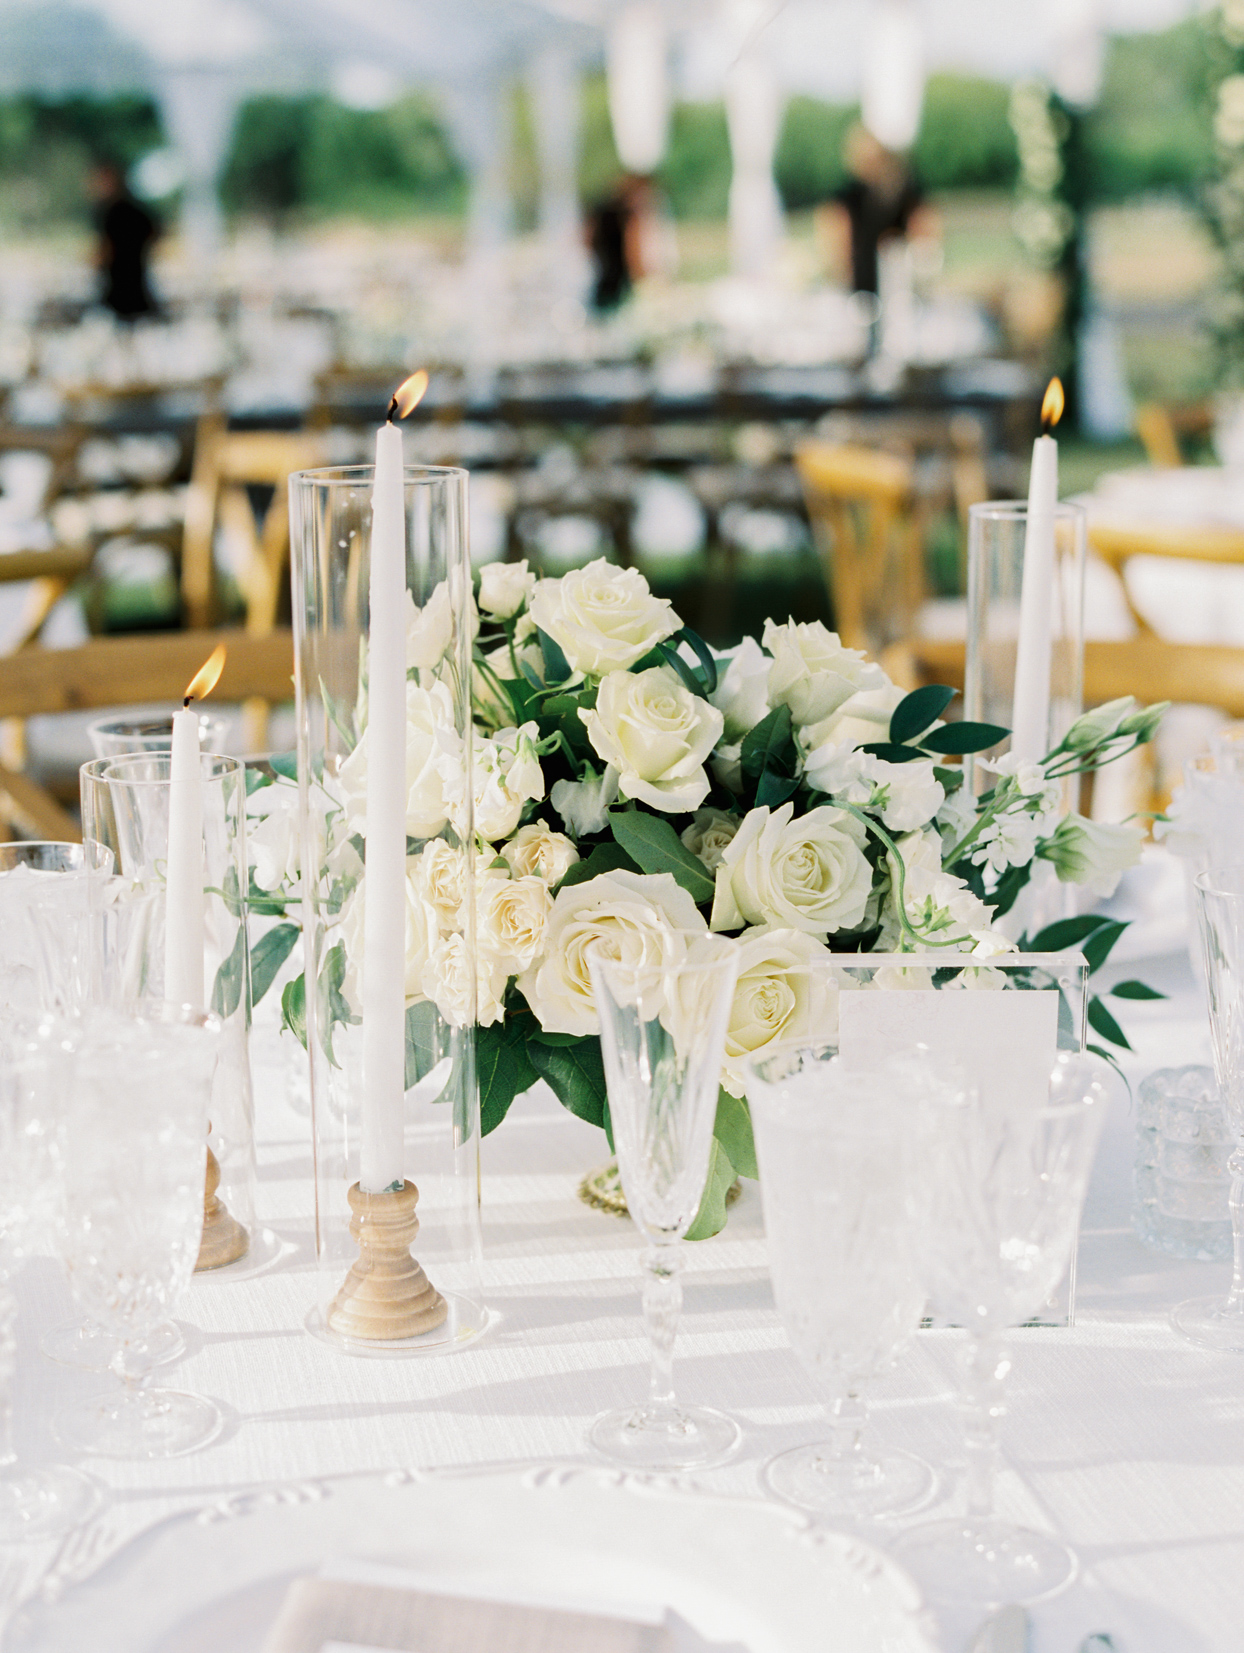 all white wedding centerpieces and china